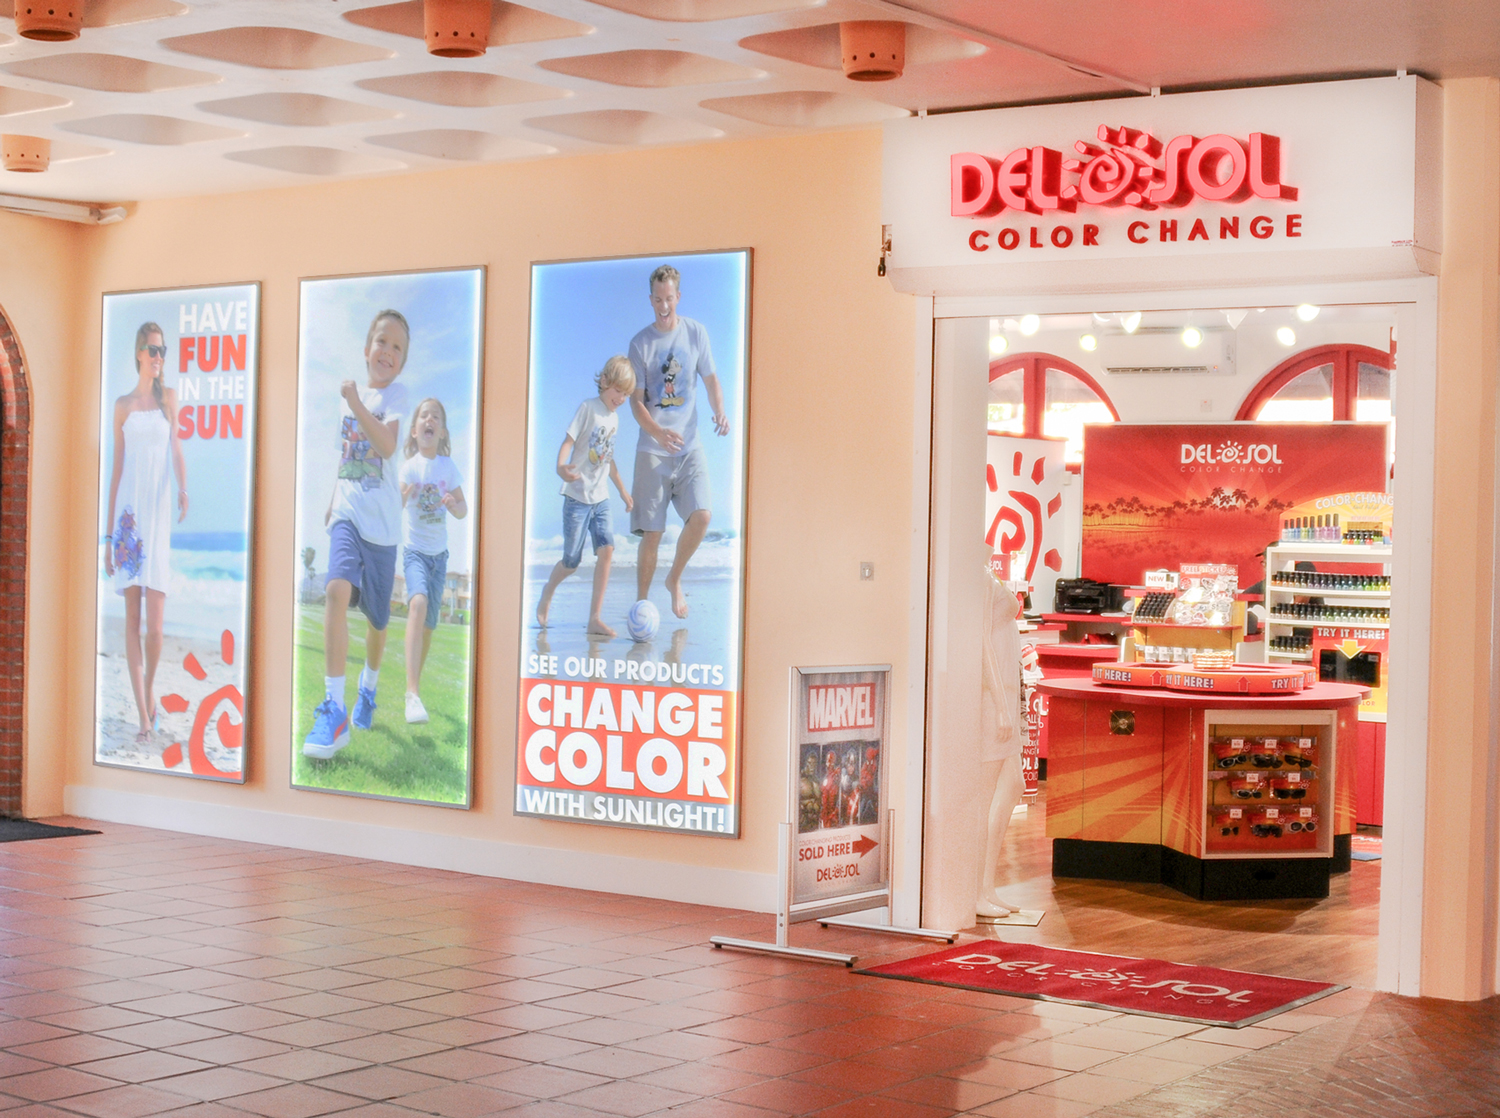 Designed new exterior graphics to show off latest products and lure shoppers into the store.